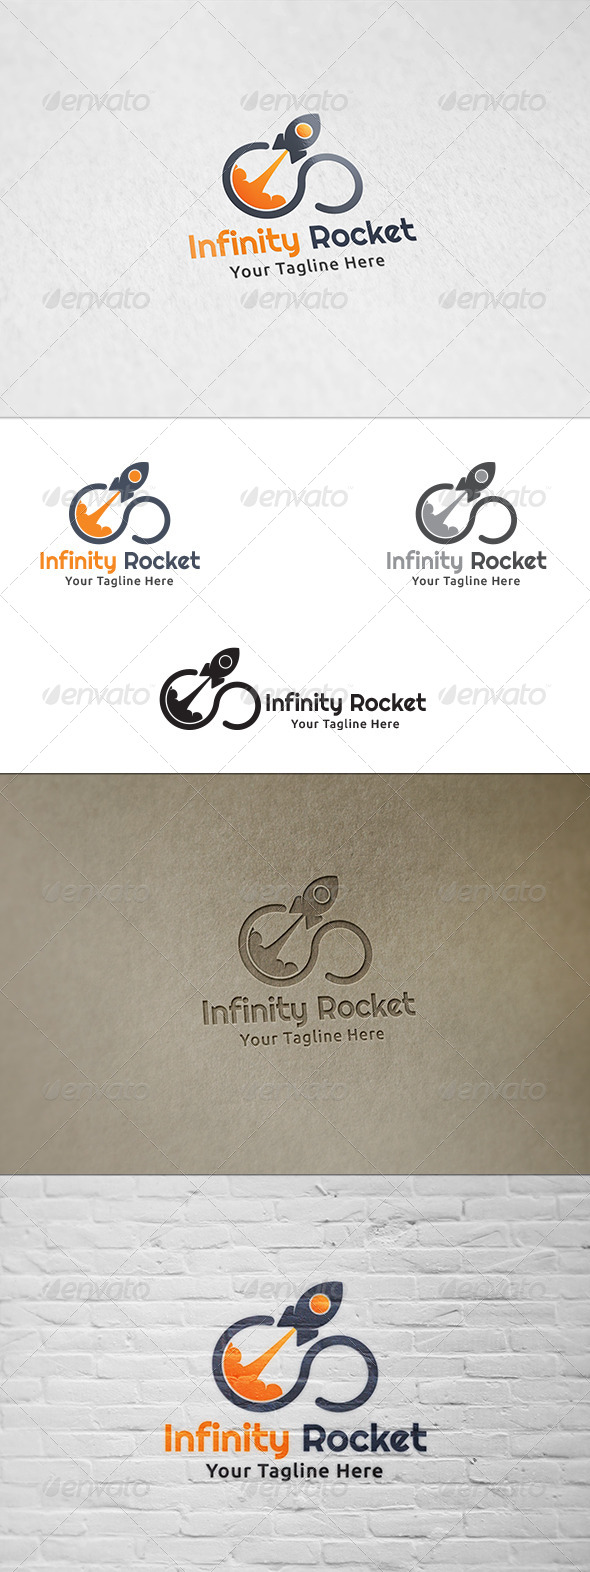 GraphicRiver Infinity Rocket Logo Template 8765695